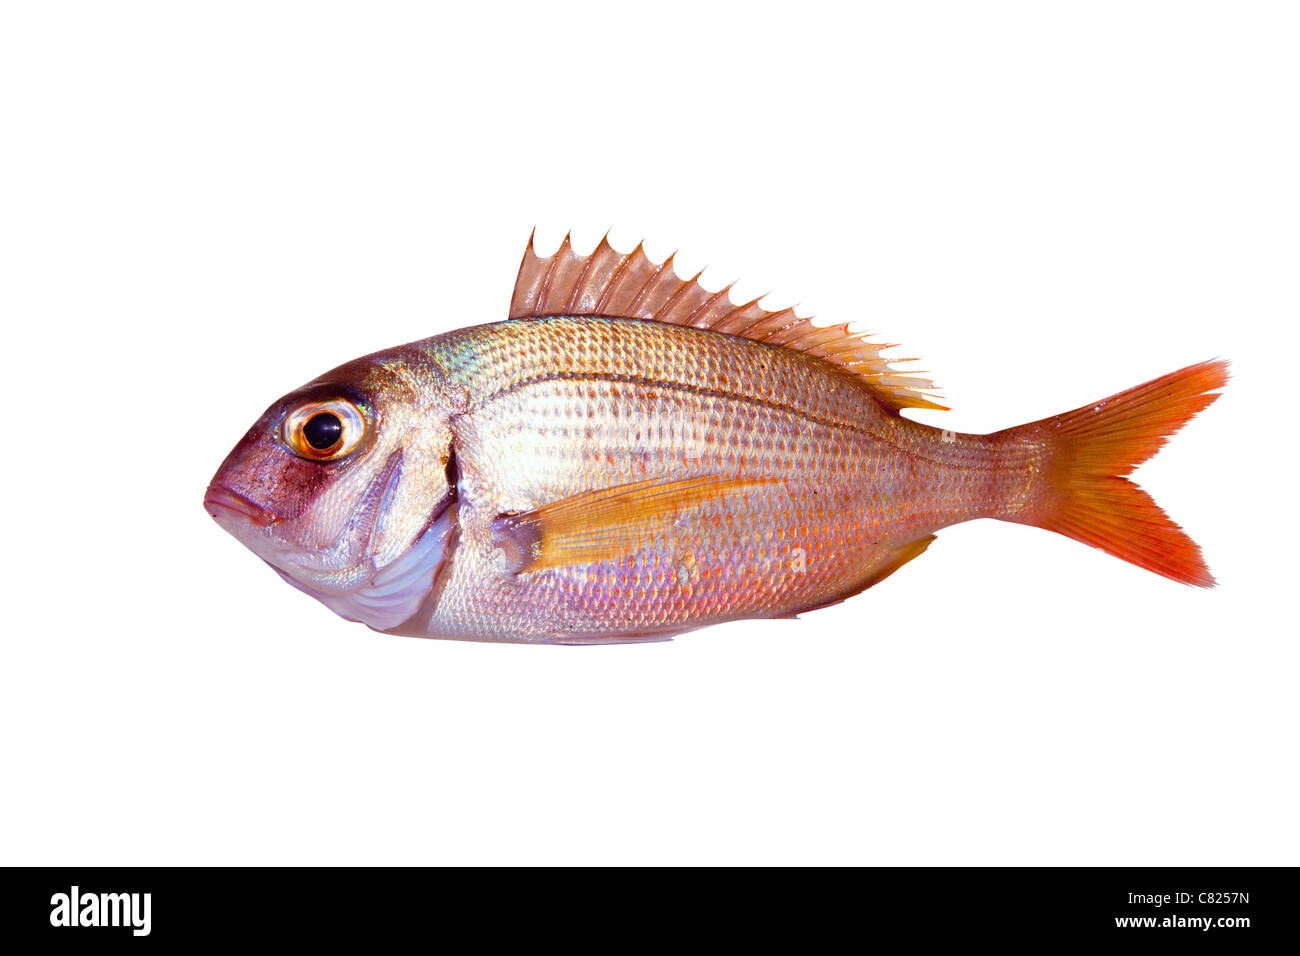 Common sea bream pagrus fish isolated on white - Stock Image